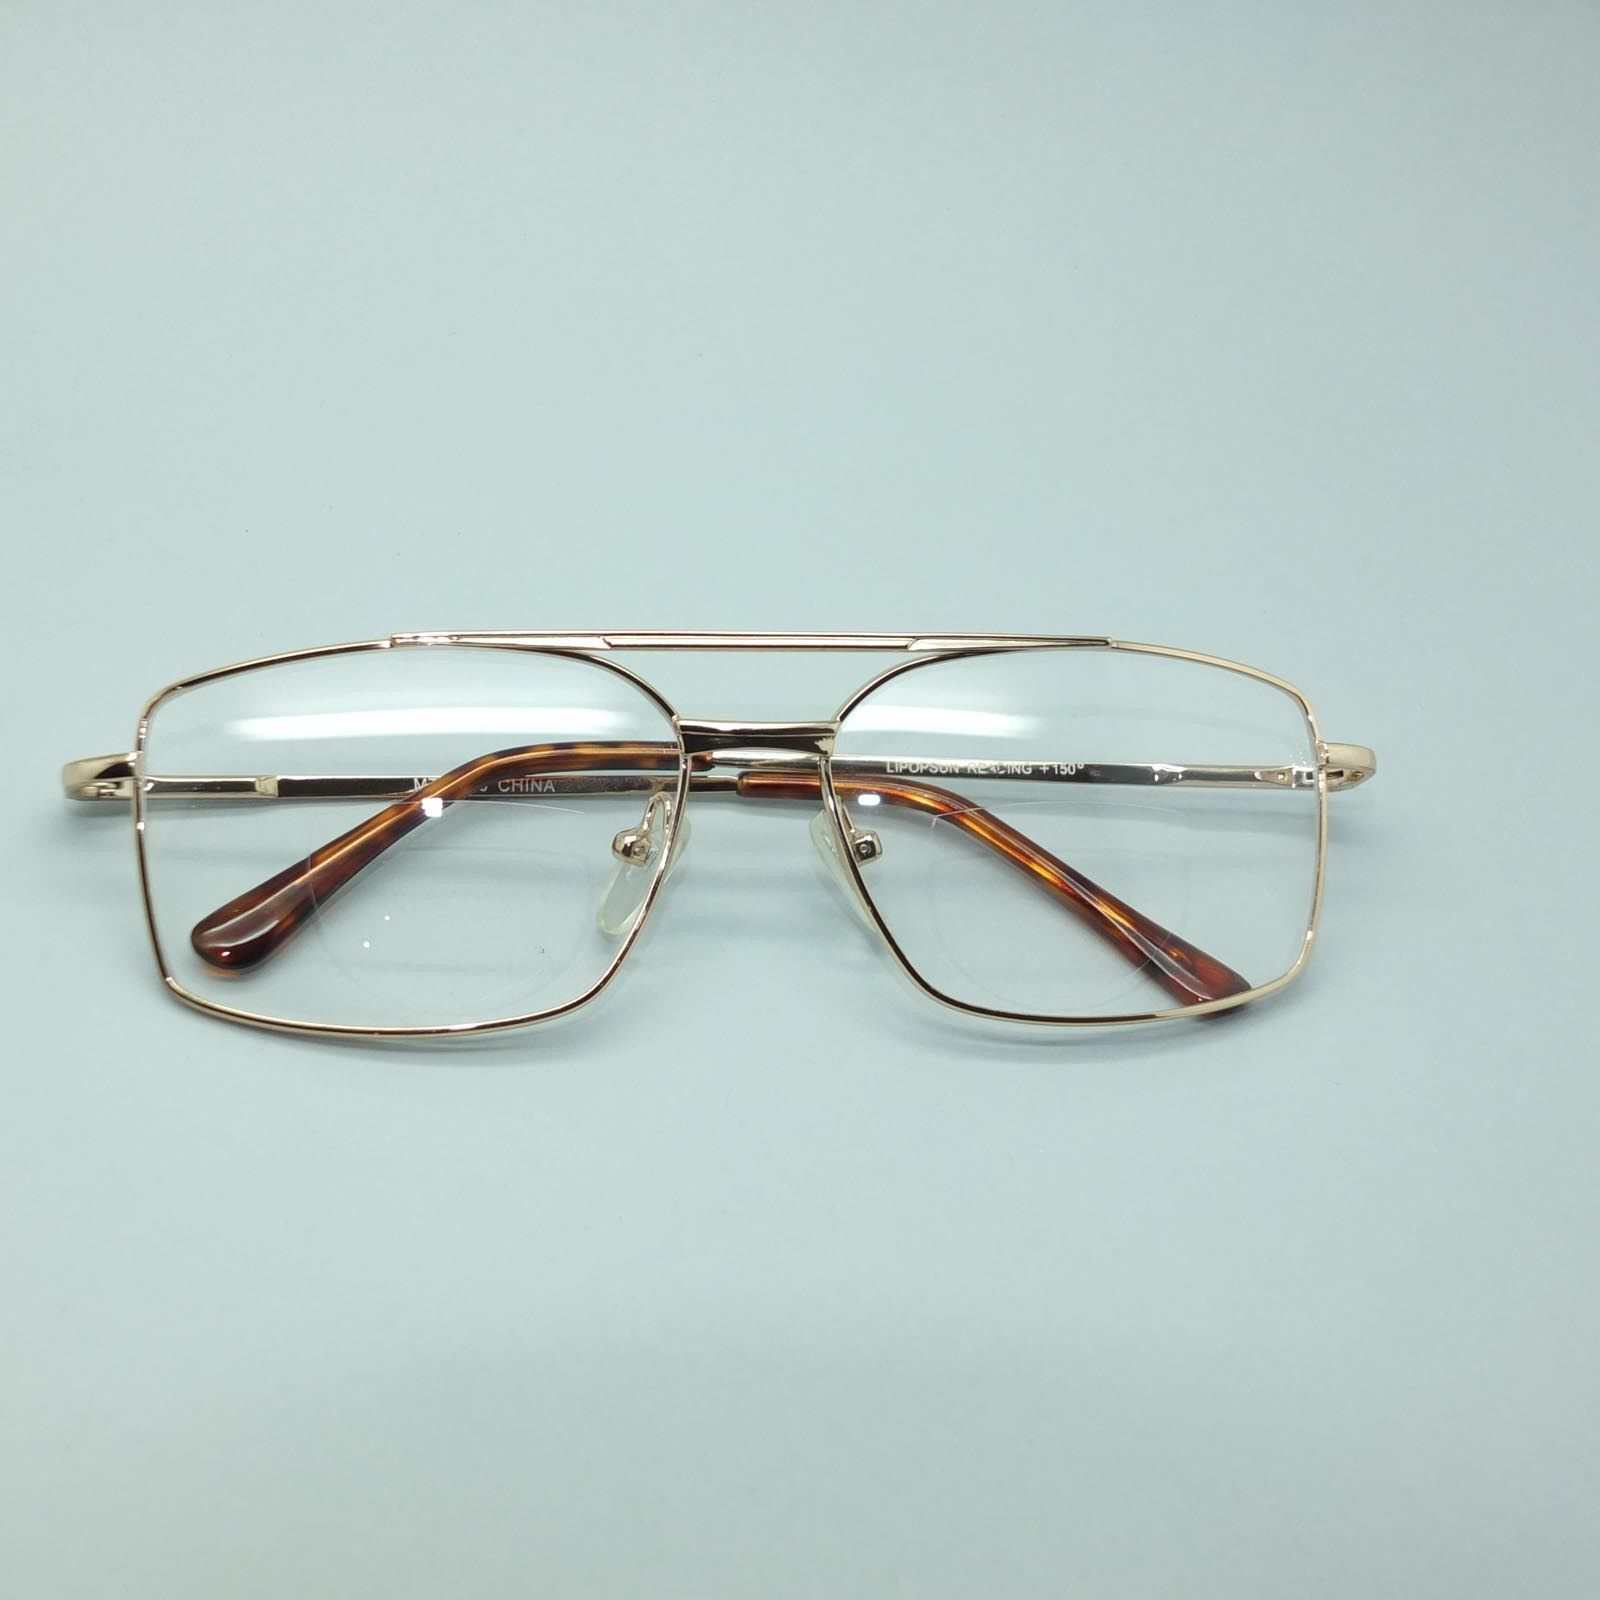 32b5eb1ff19 Bifocal Reading Glasses Square Aviator 80 s Style Gold Metal Frame +2.00  Lens